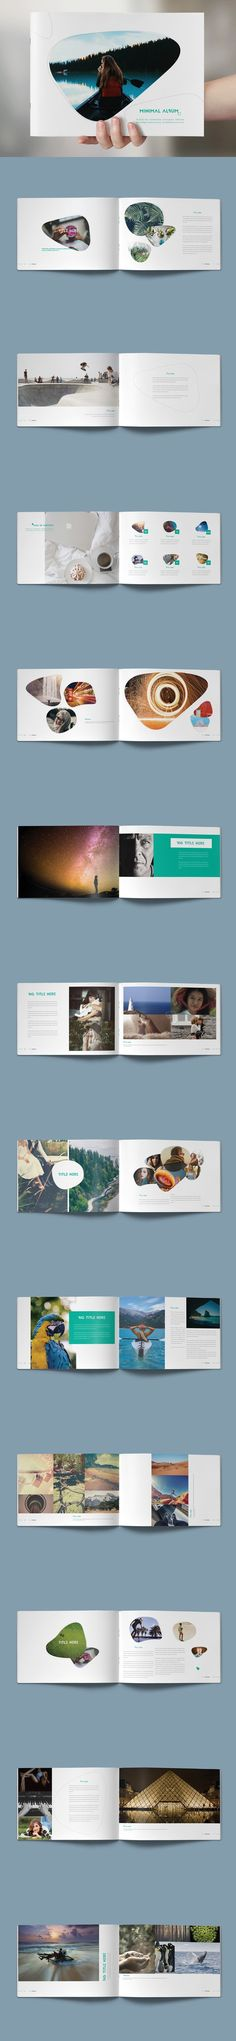 Minimal Photo Album. Brochure Templates. $15.00